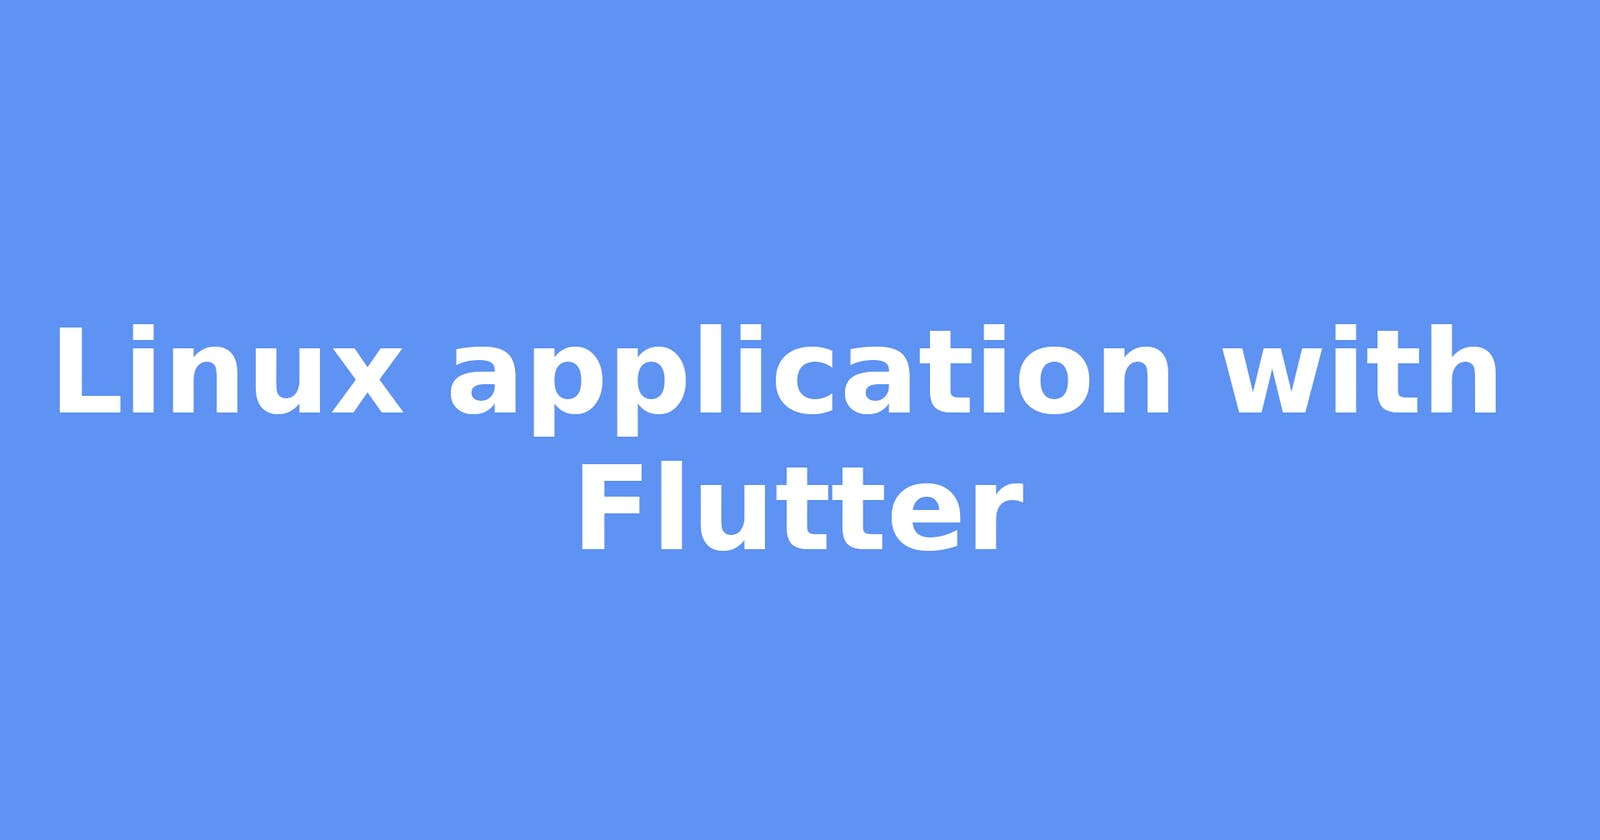 Create Linux application with Flutter